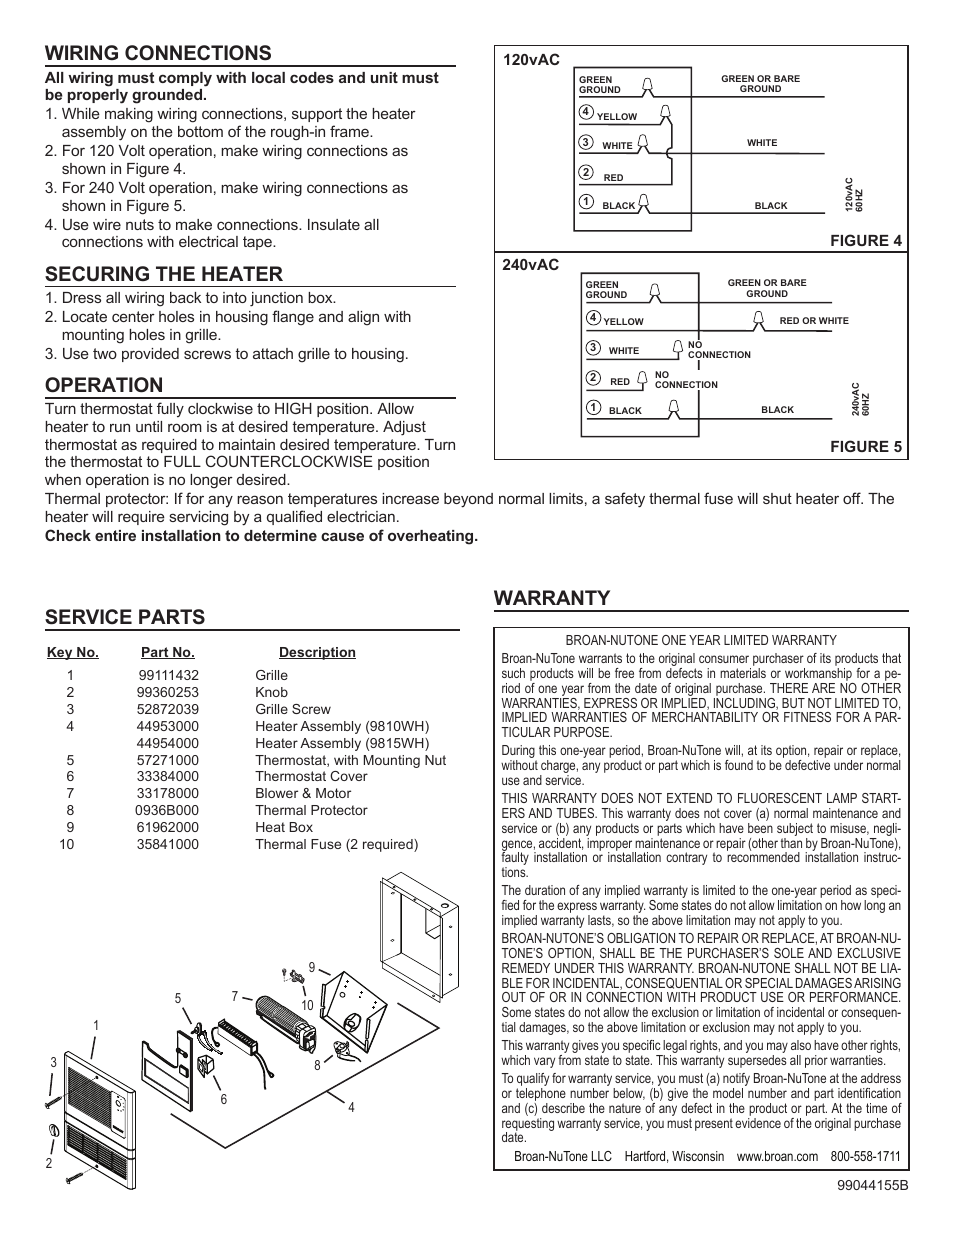 Wiring connections, Securing the heater, Operation | Broan Wall Heaters  9815WH SERIES User Manual | Page 2 / 4